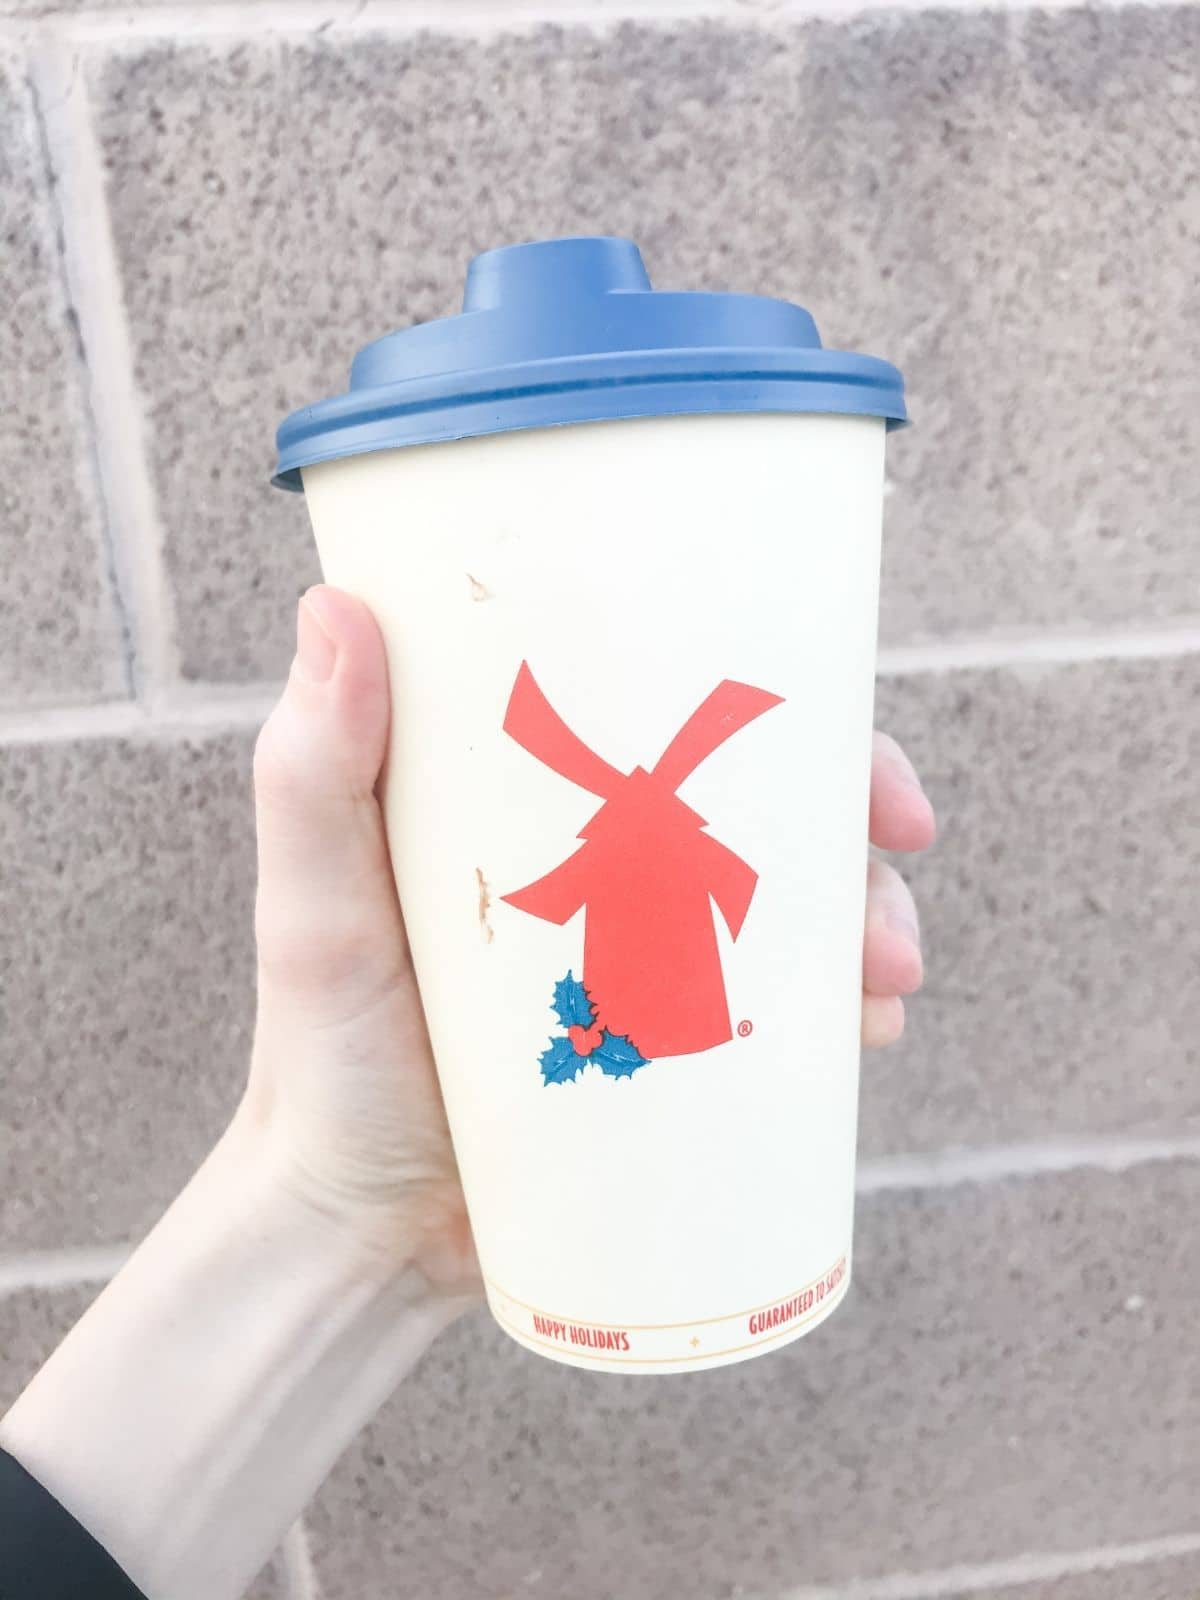 dutch bros vegan hot mocha with oat milk, chocolate, and salted caramel against a brick background